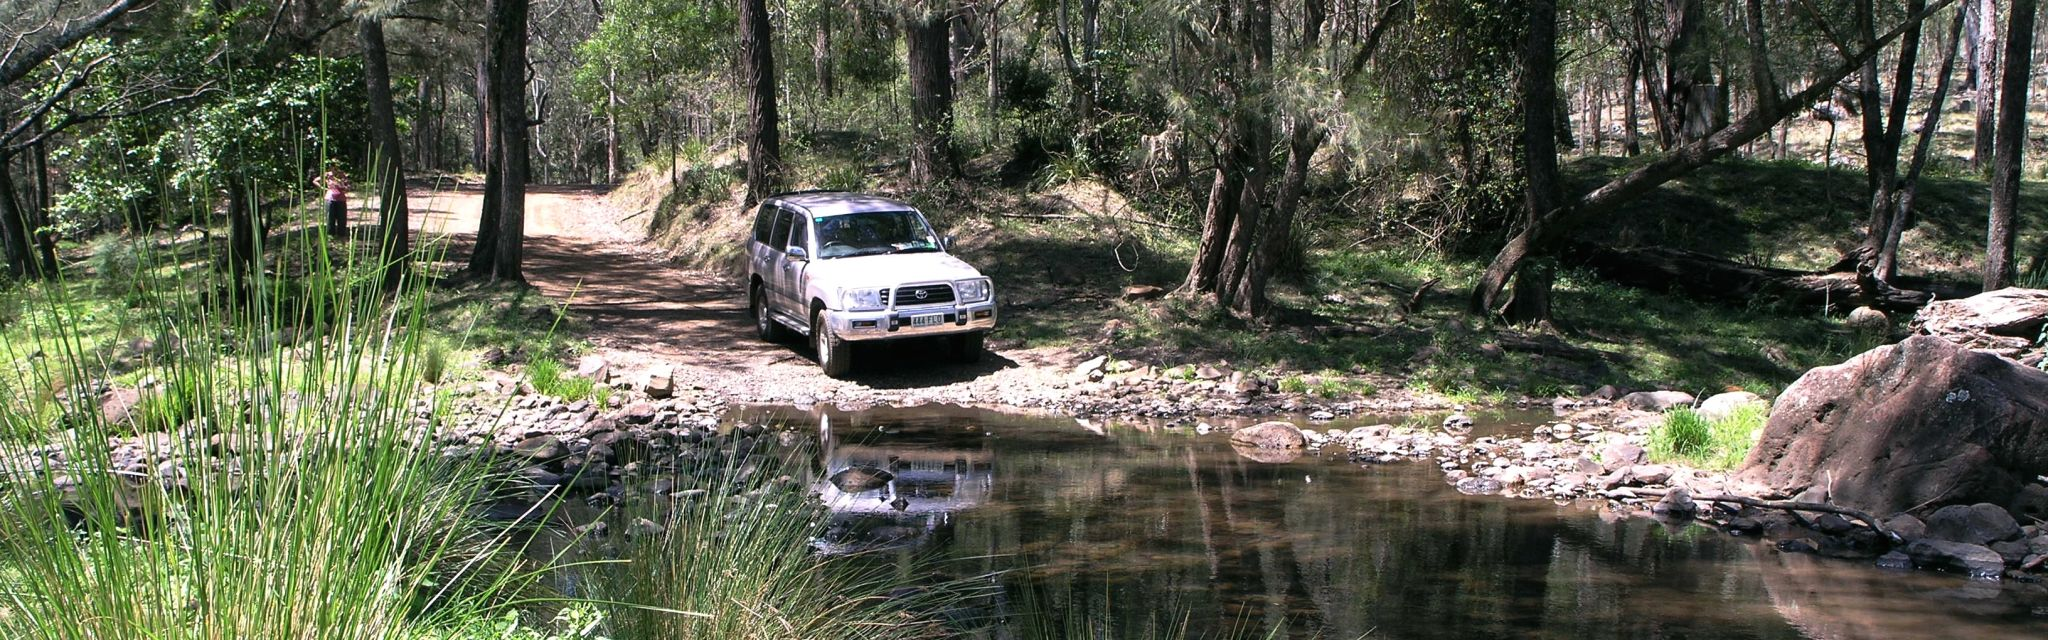 Tour Transport Toyota crossing Condamine Gorge Creek